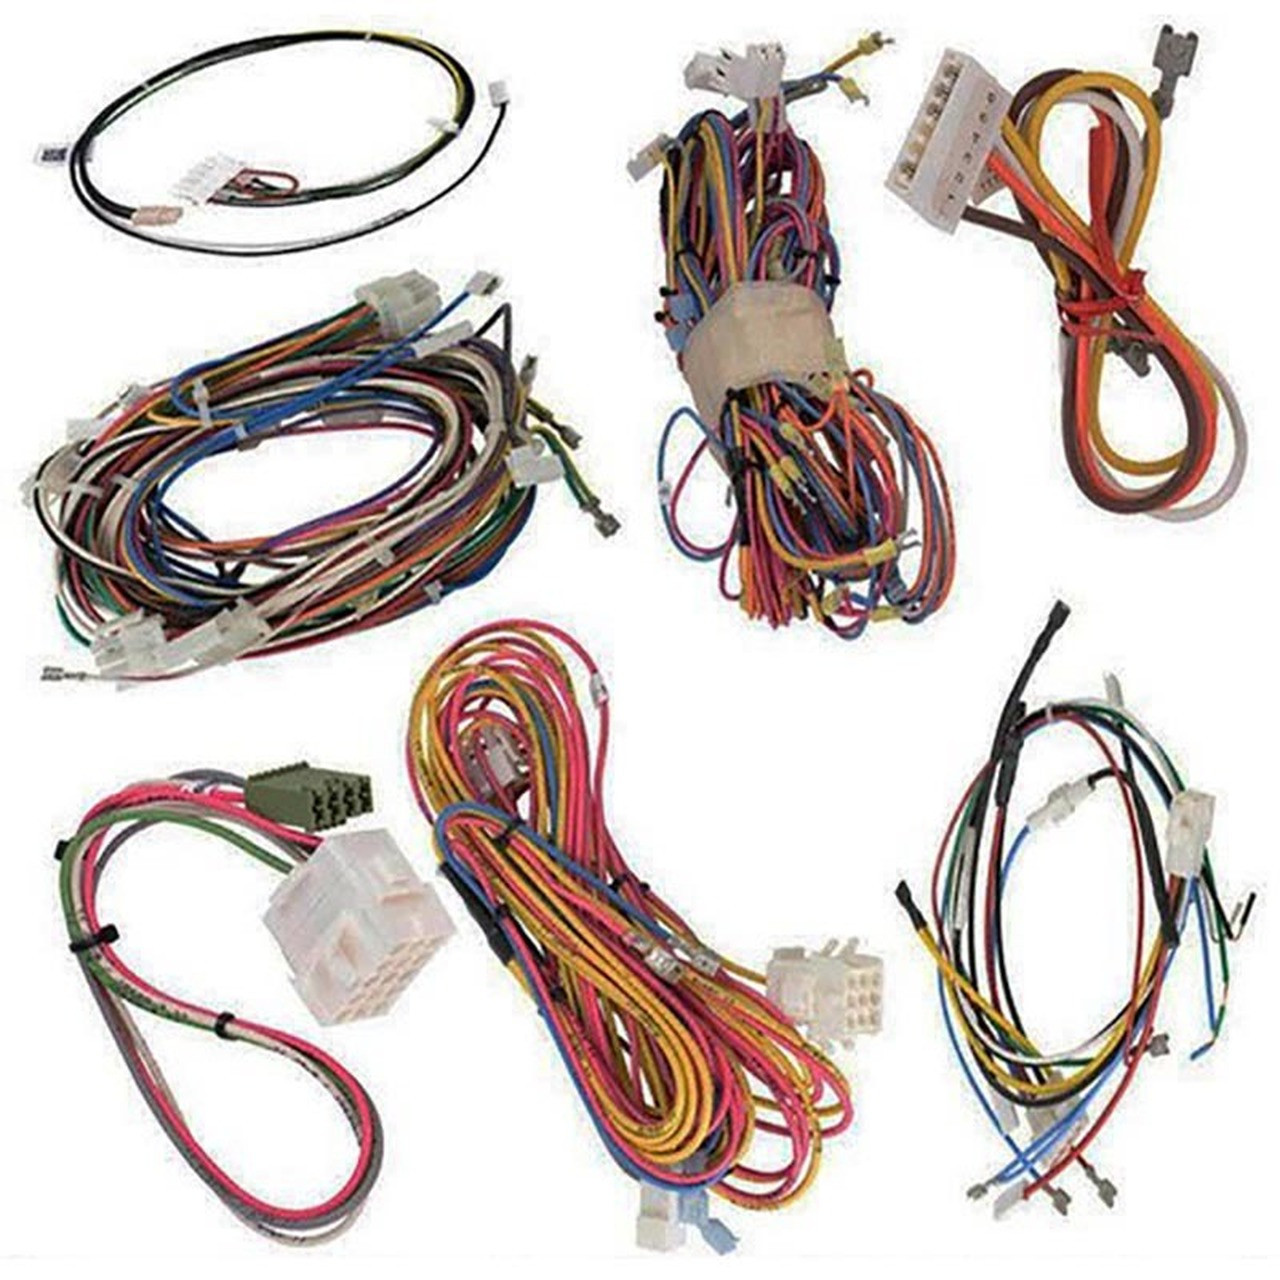 [FPER_4992]  Compressor Wiring Harness | Wiring Diagram | Arb Cksa12 Compressor Wiring Diagram |  | Wiring Diagram - AutoScout24